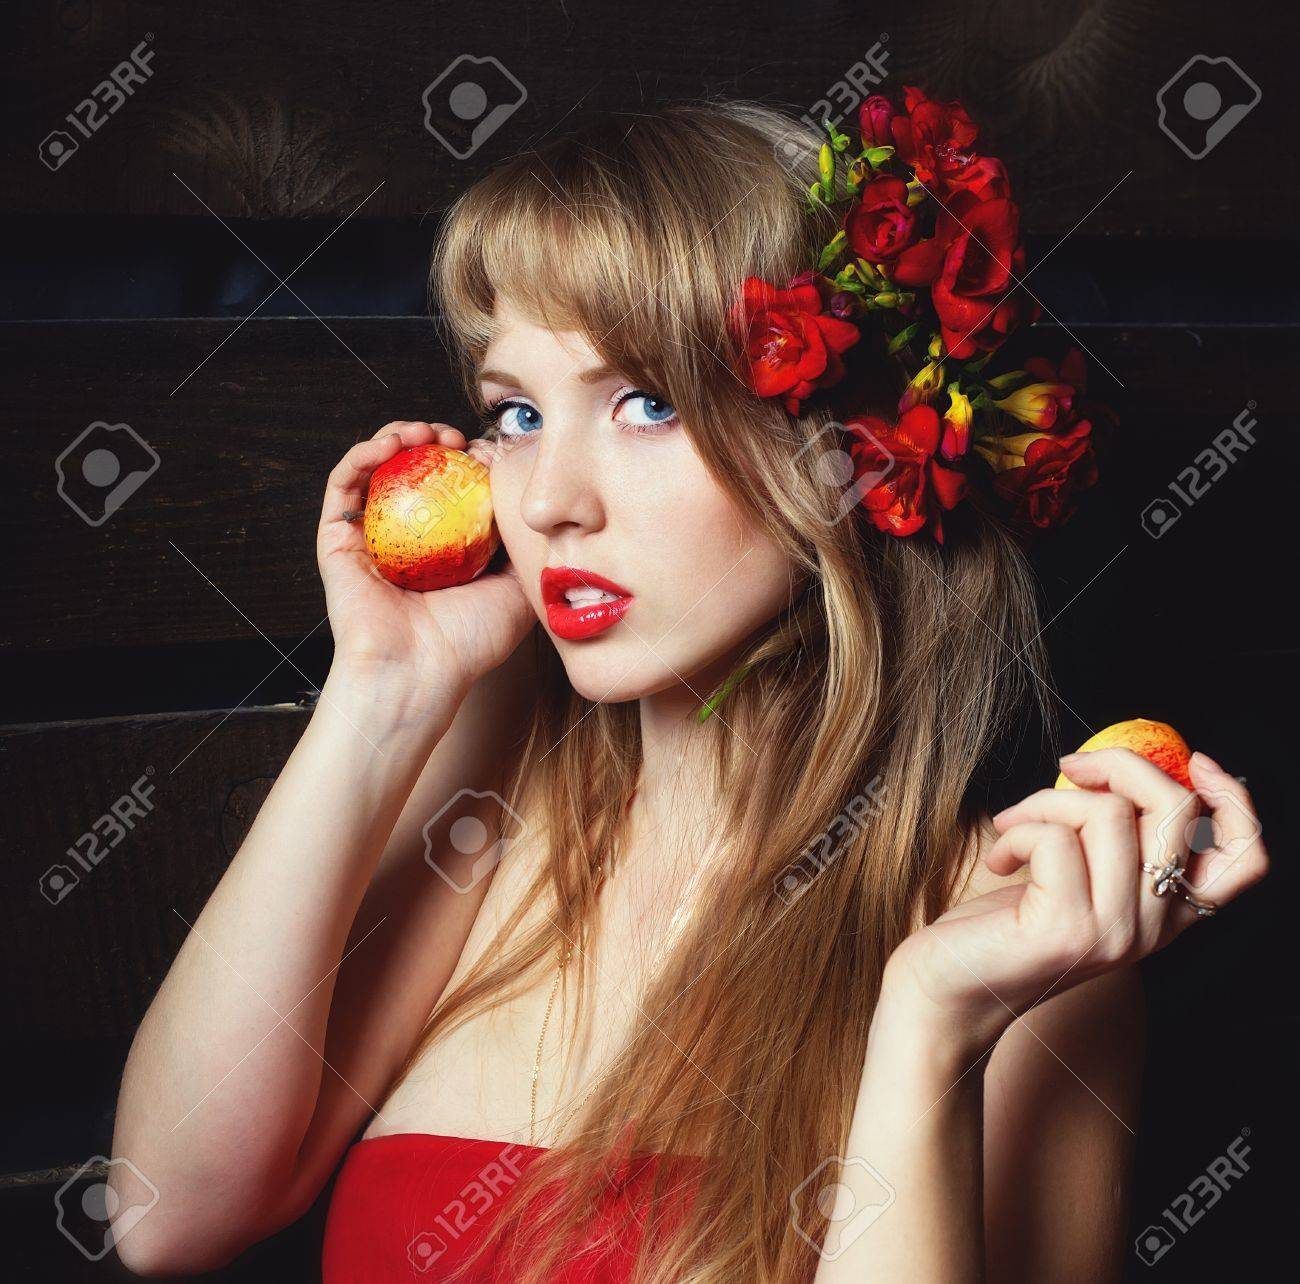 woman in a red dress with an apple in hands on a mow Stock Photo - 14642372